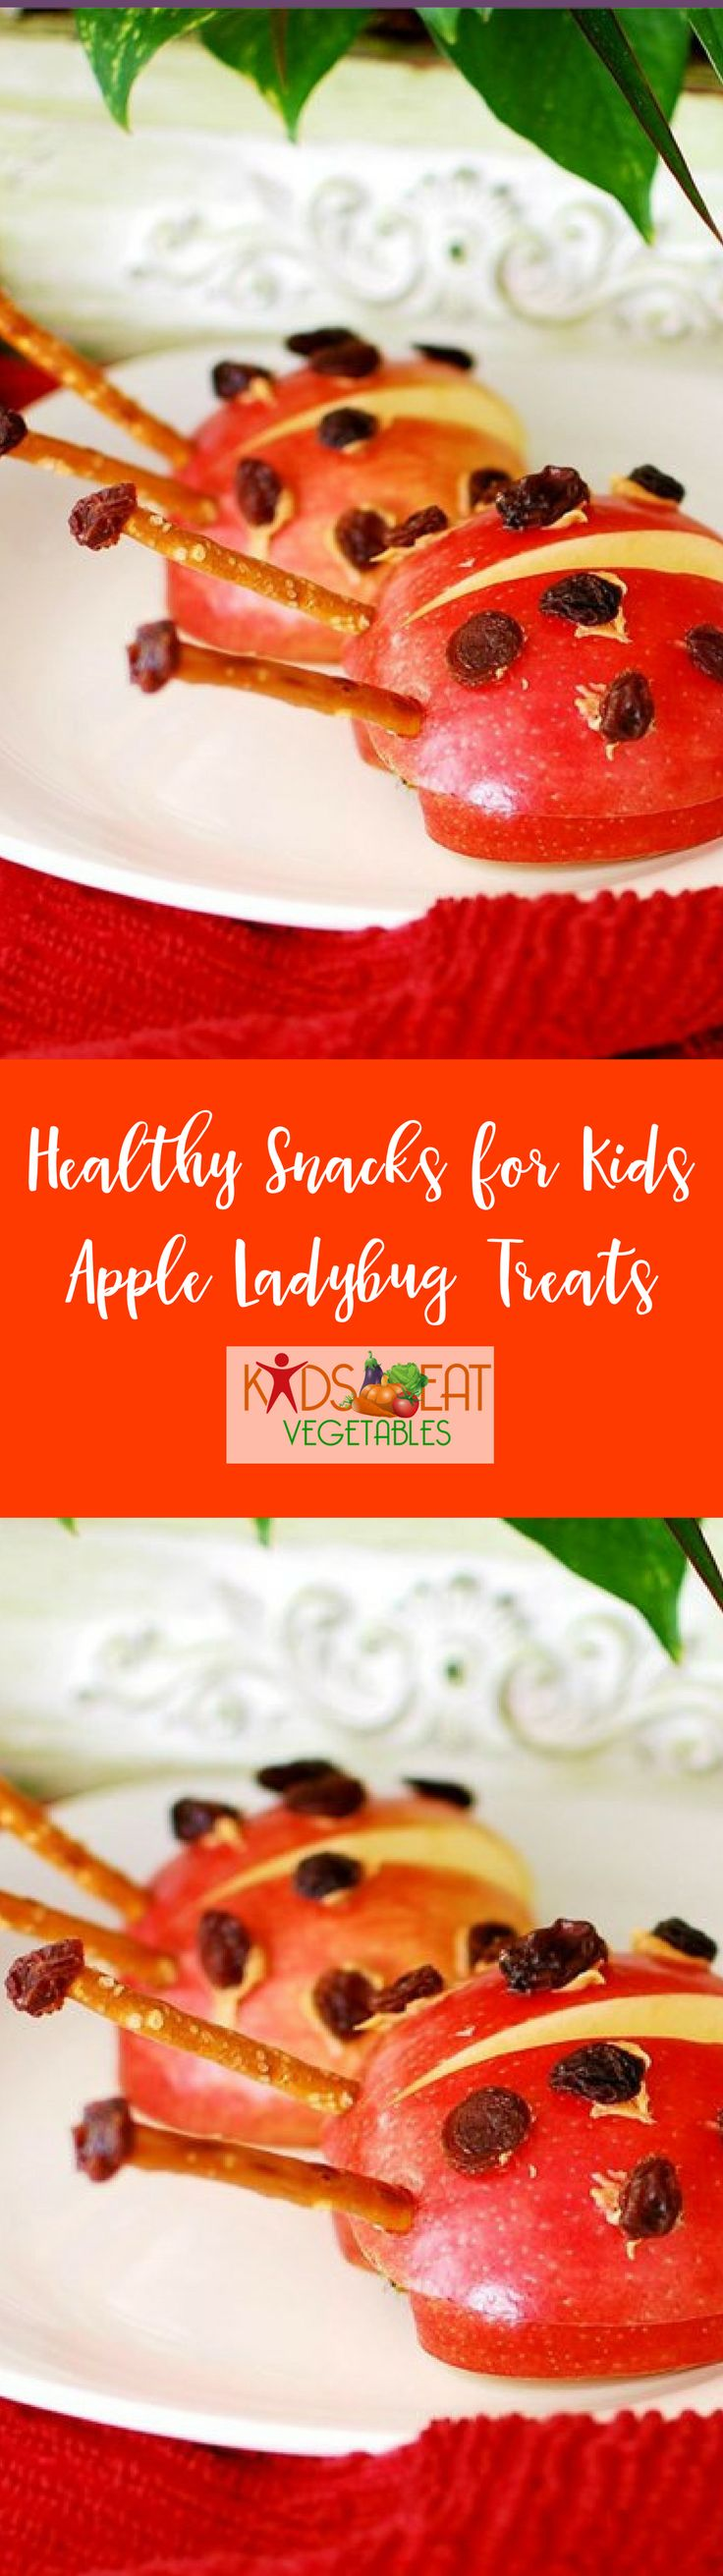 This simple snack is fun for the kids and easy to make. Slice your apples in half, dab on some natural peanut butter and splash a few spots on its back with raisins. And for a crunchy delight, add two thin pretzels for antennae's.  Apple ladybug treats are the perfect afternoon 'lift me up' when kids get a little hungry and needs a healthy snack. And for kids allergic to nuts, substitute strawberry cream cheese. Have fun!